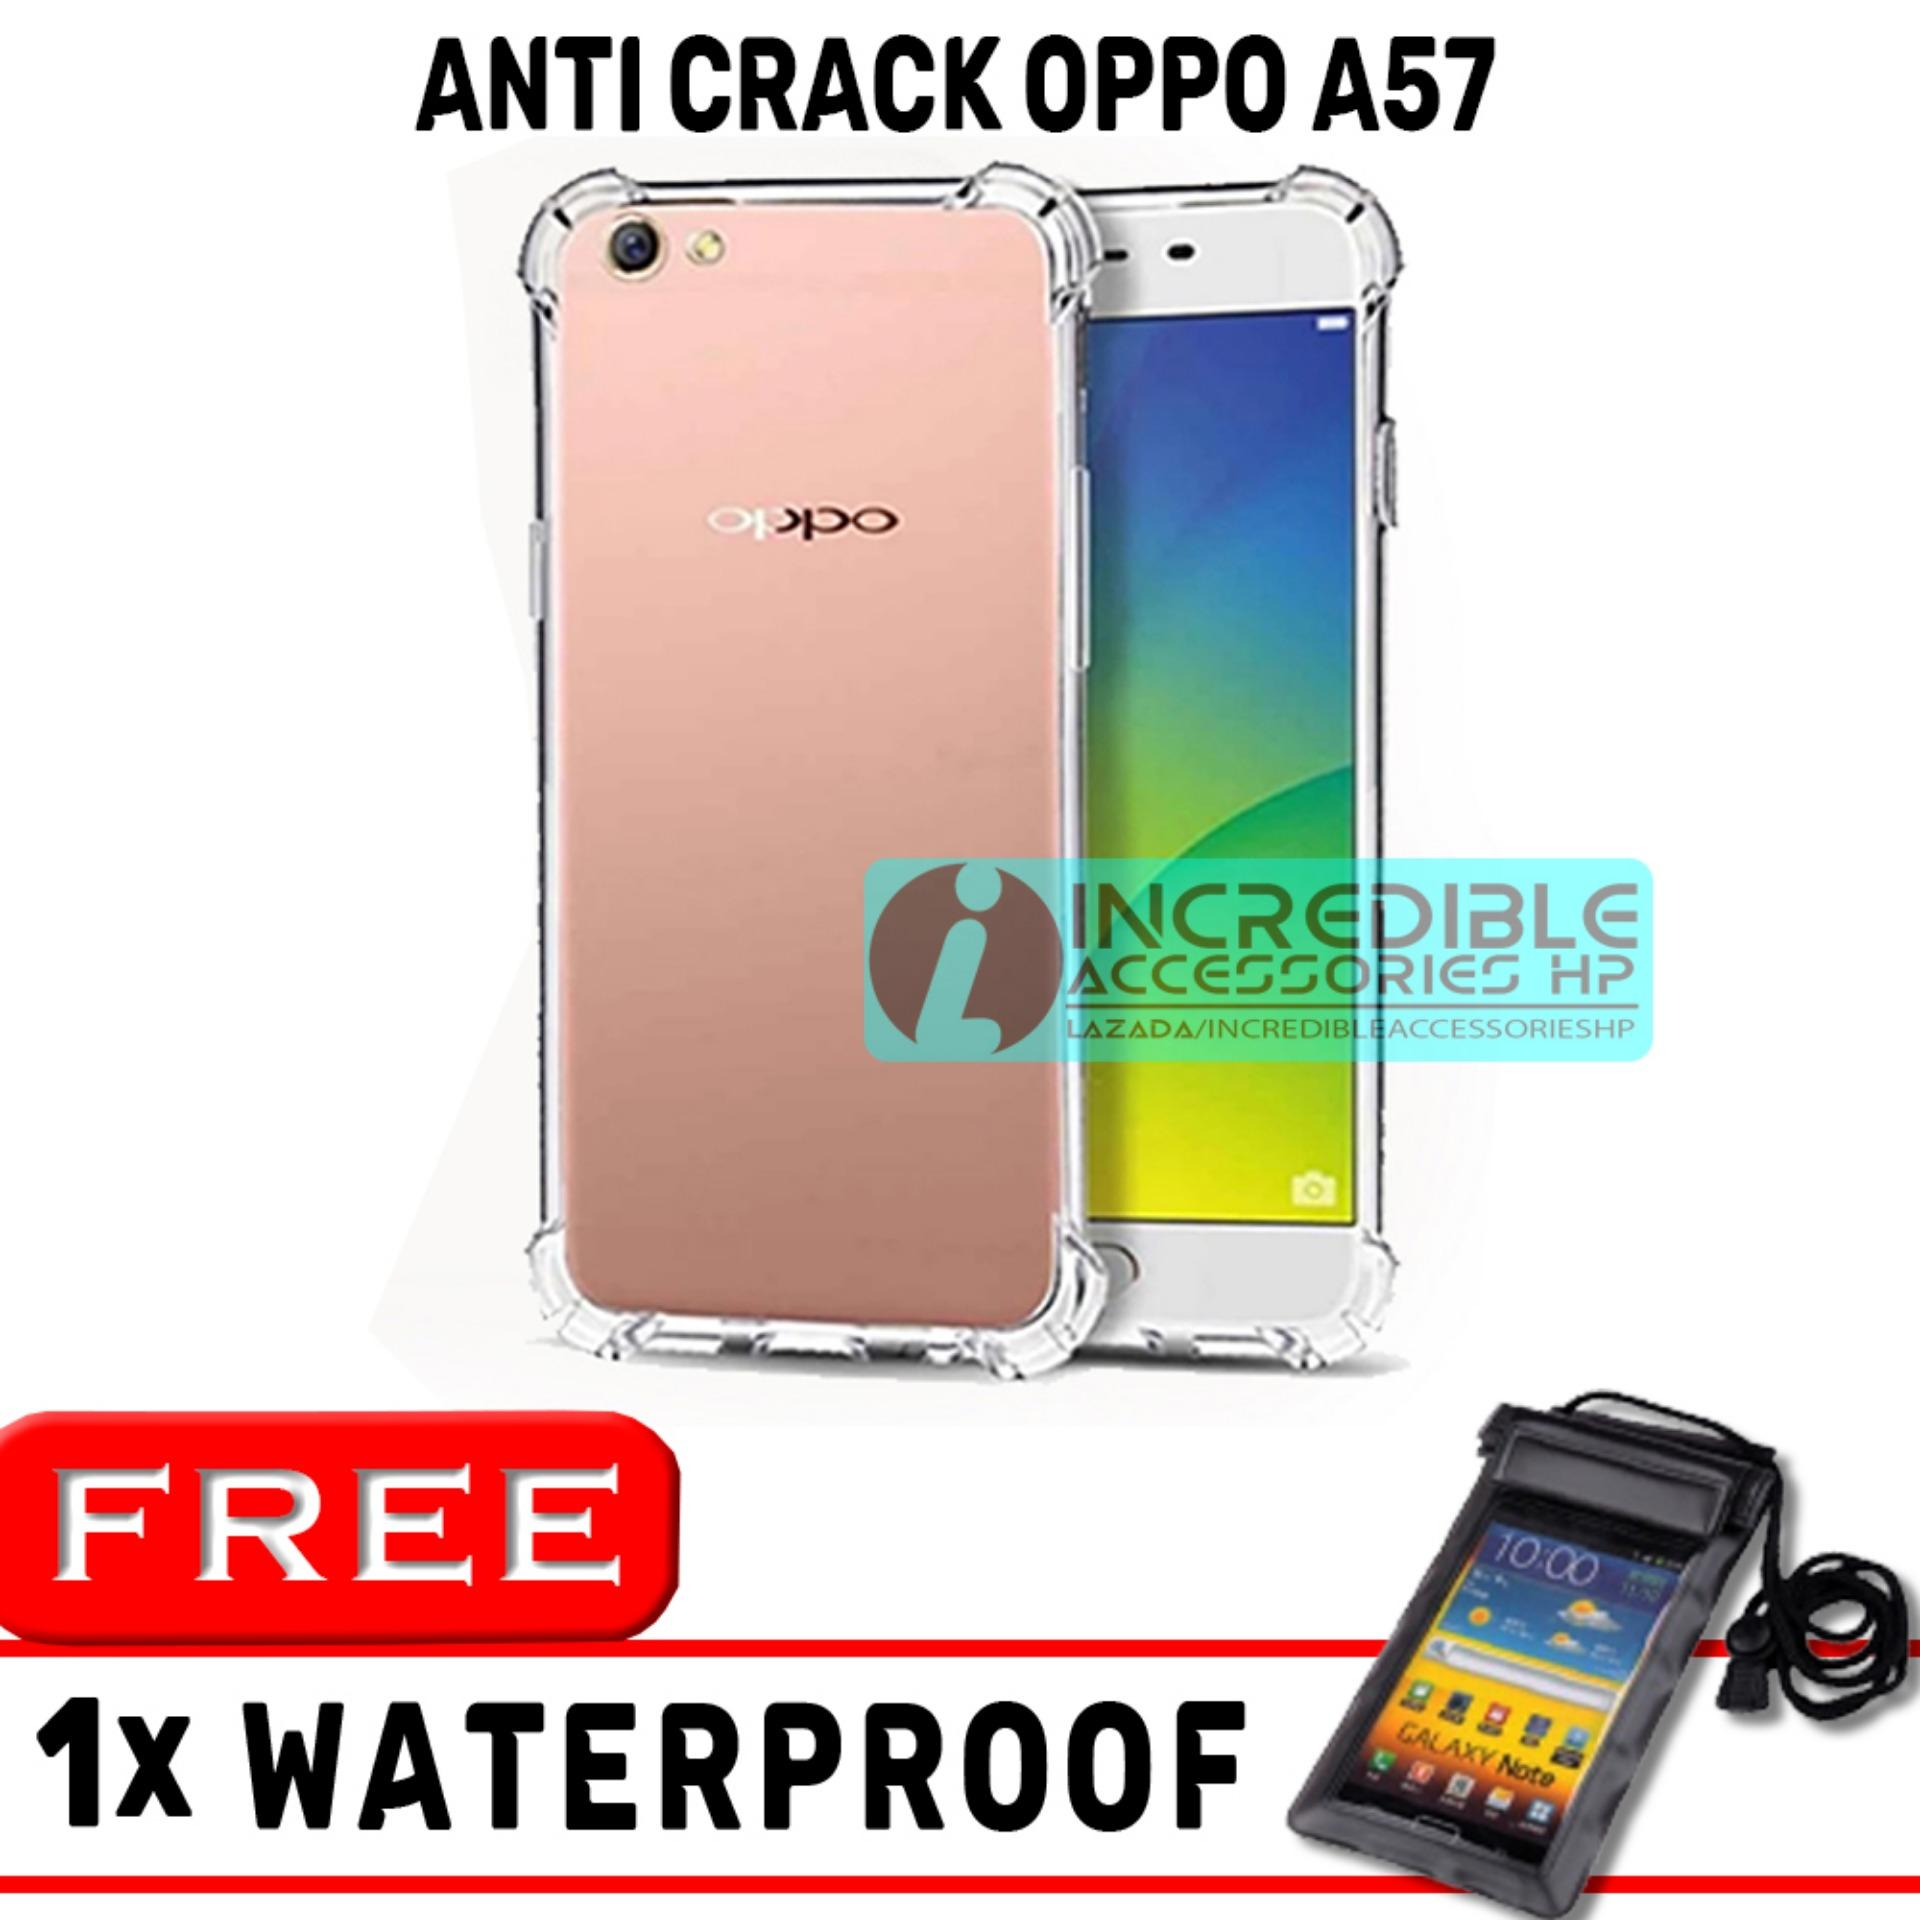 Anti Crack for Oppo A57 Softcase Elegant Anti Shock Jelly Case - Bening + Free Waterproof